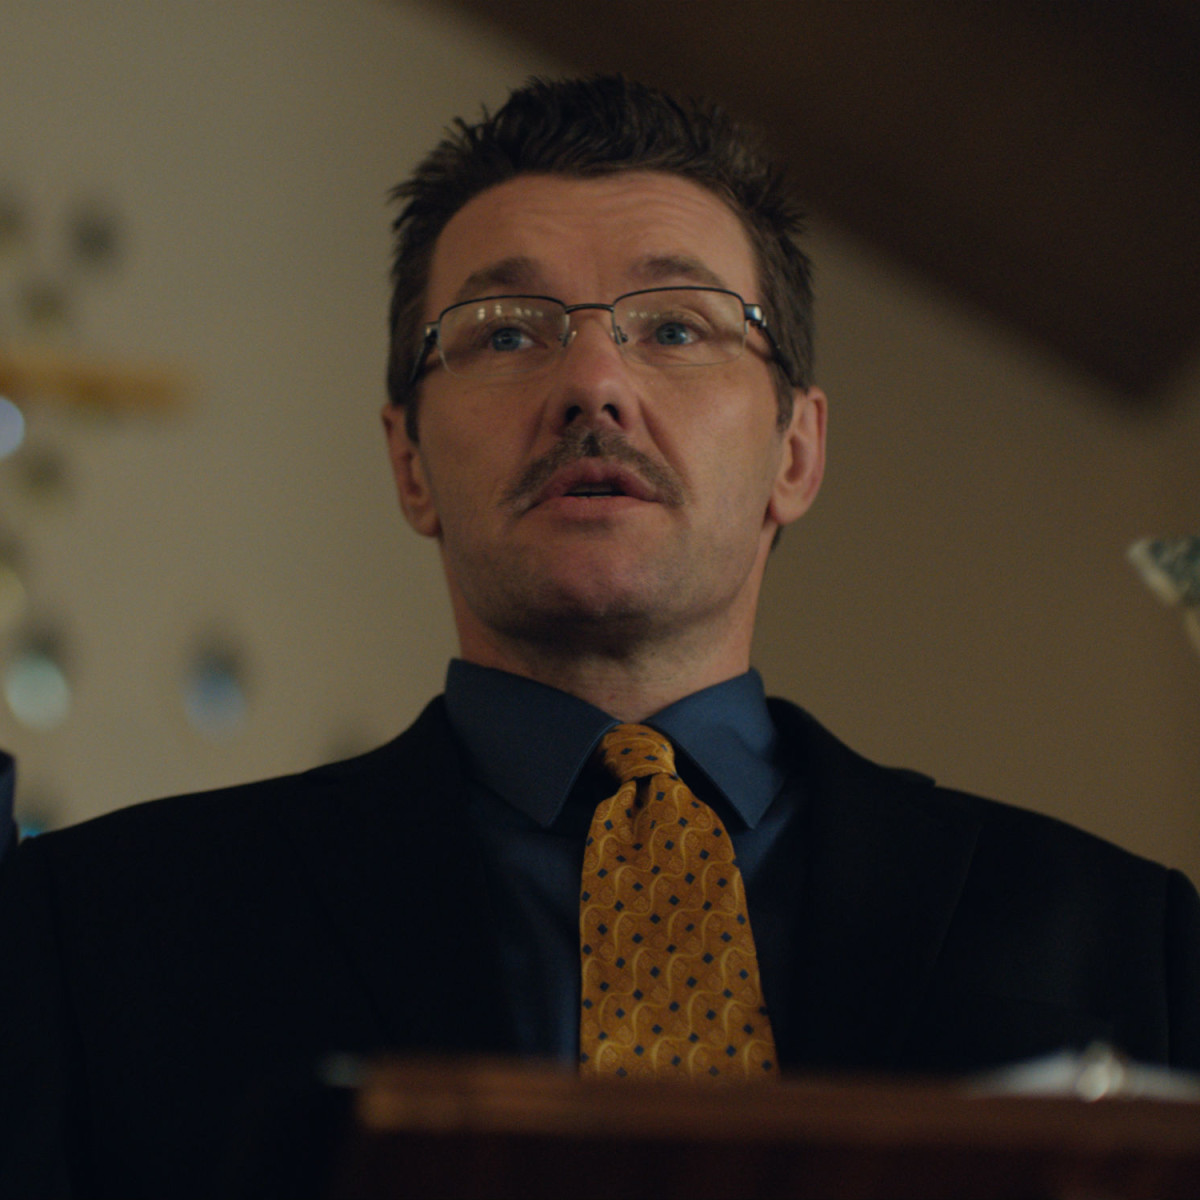 Joel Edgerton in Boy Erased